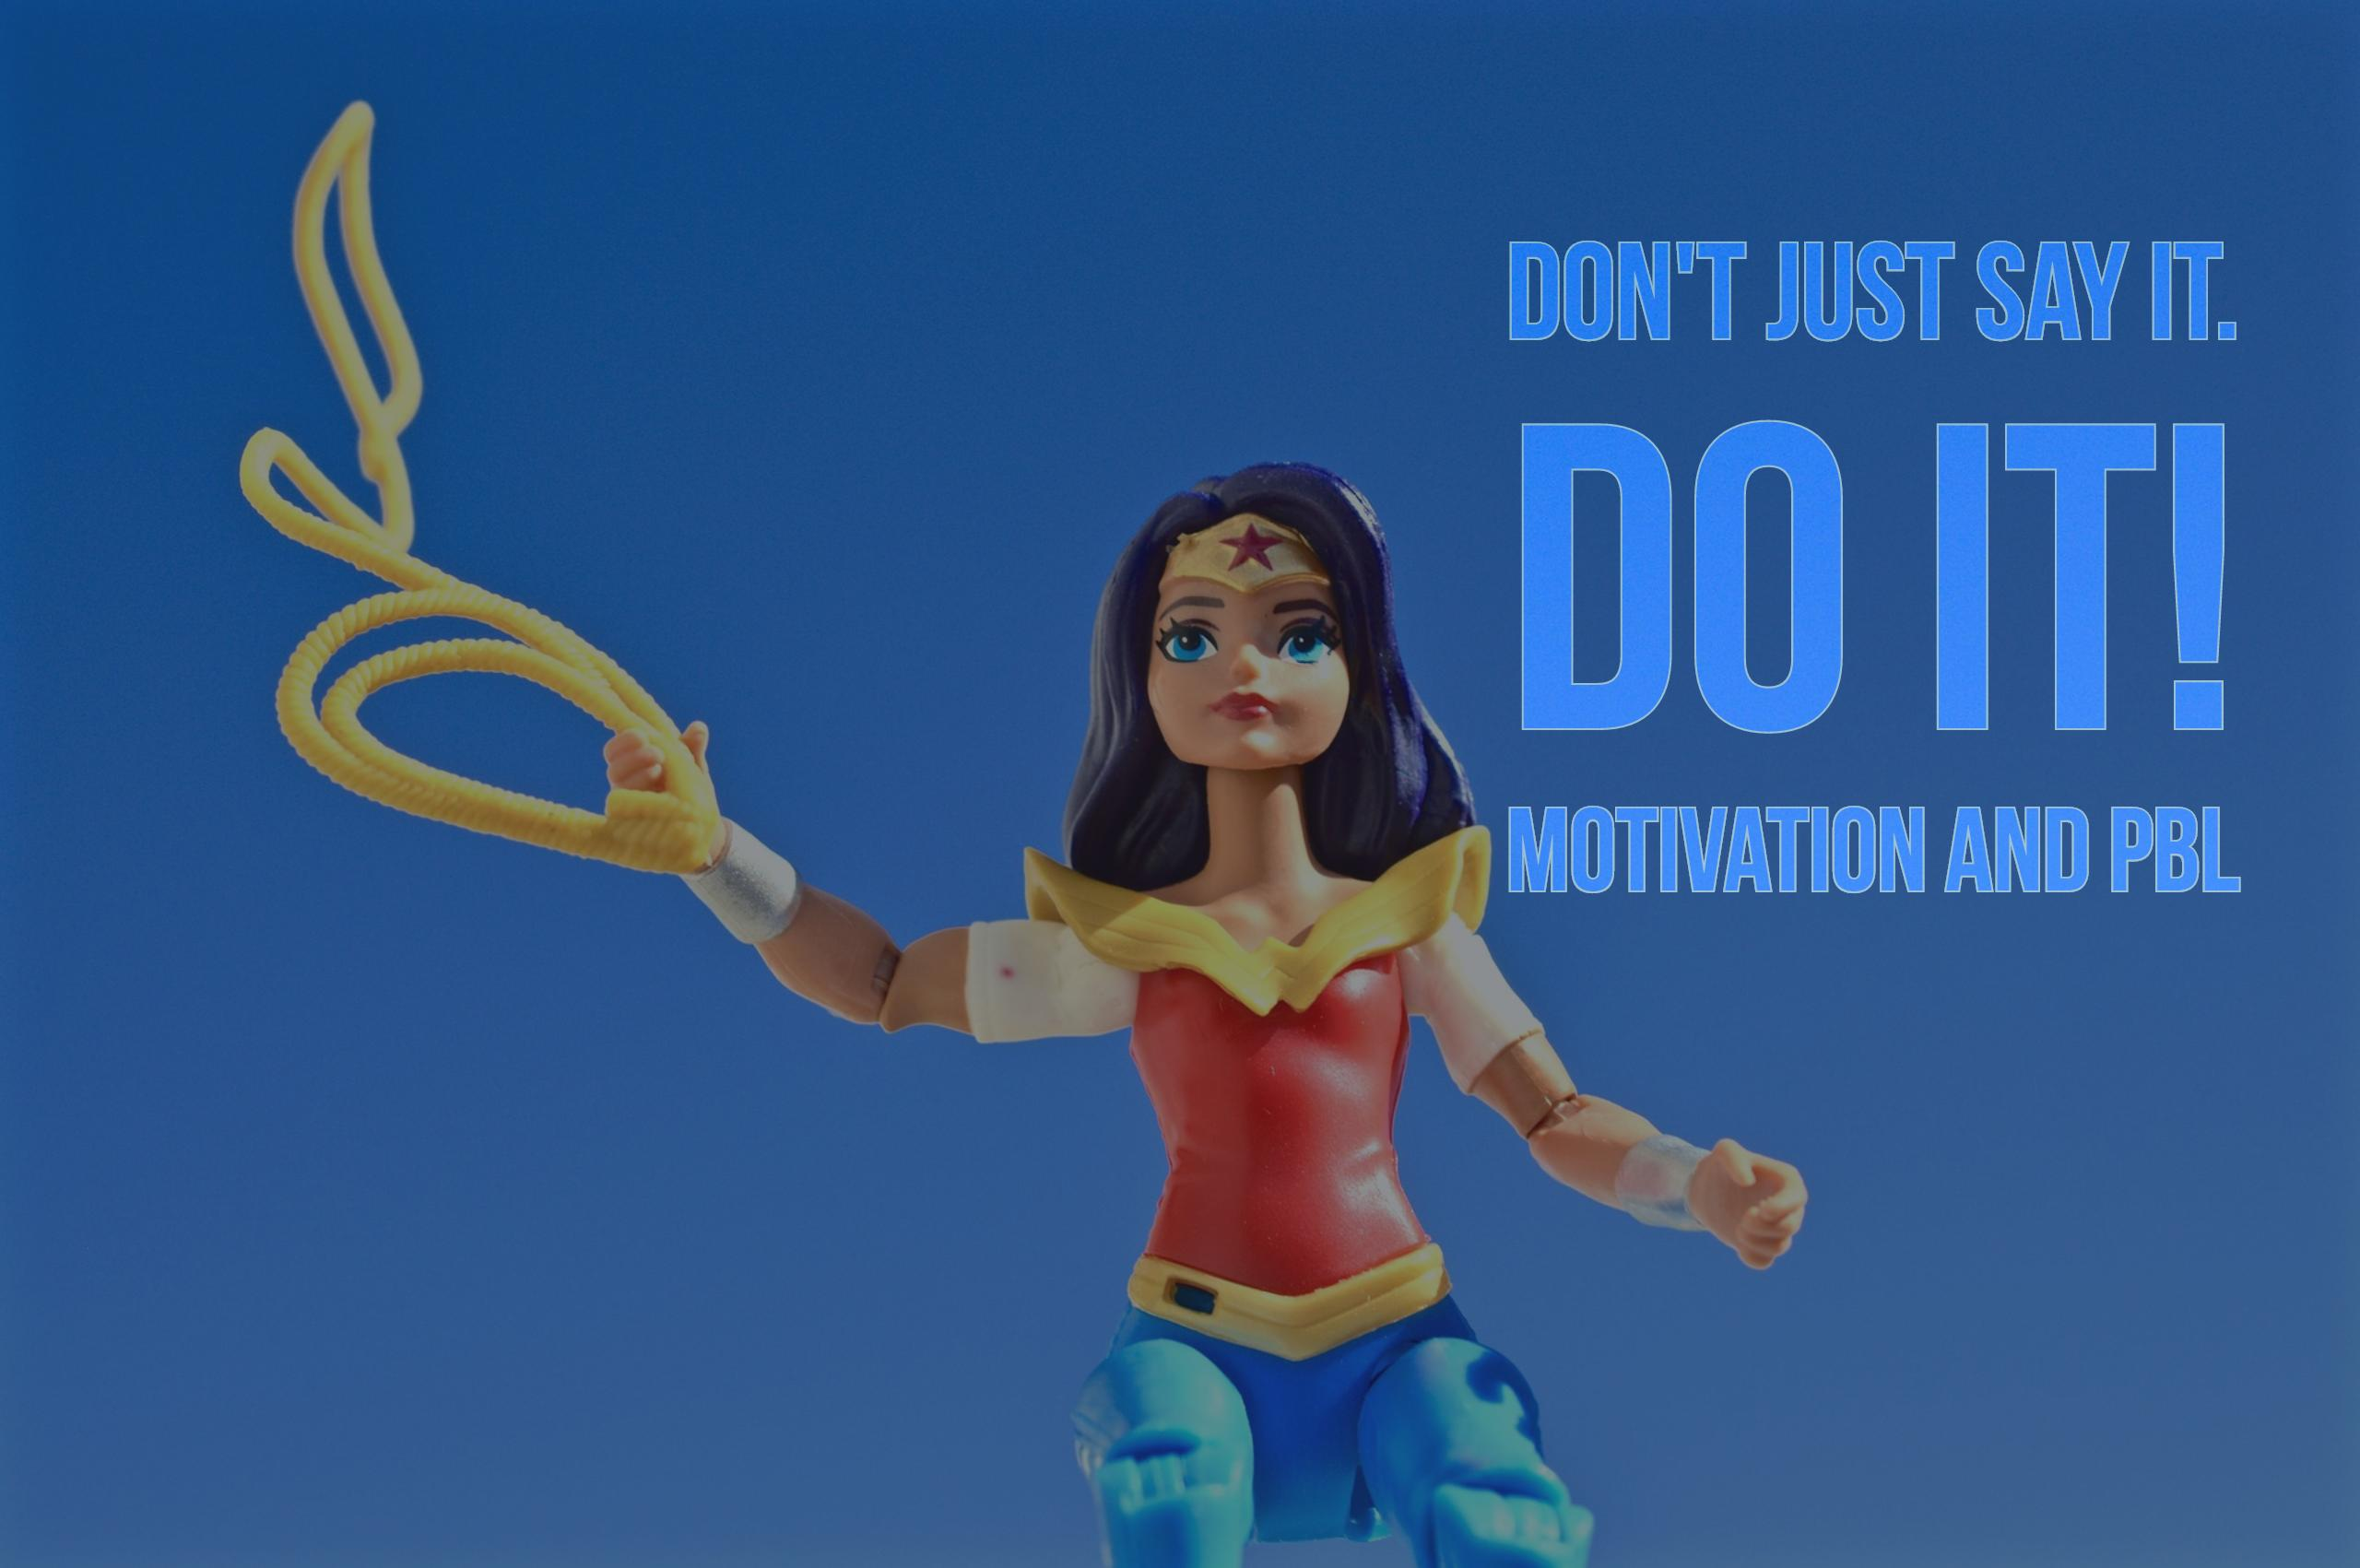 Don't just say it. Do it! Motivation and PBL